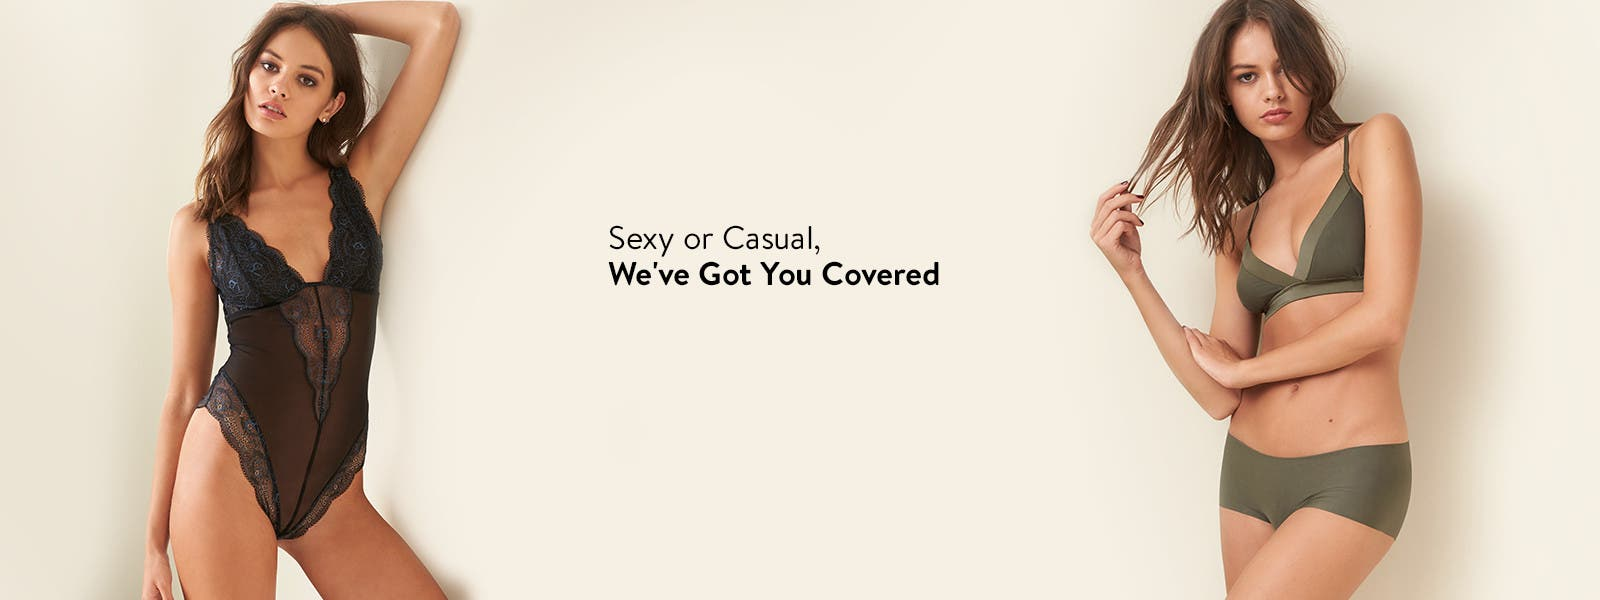 Sexy or casual: we've got you covered.